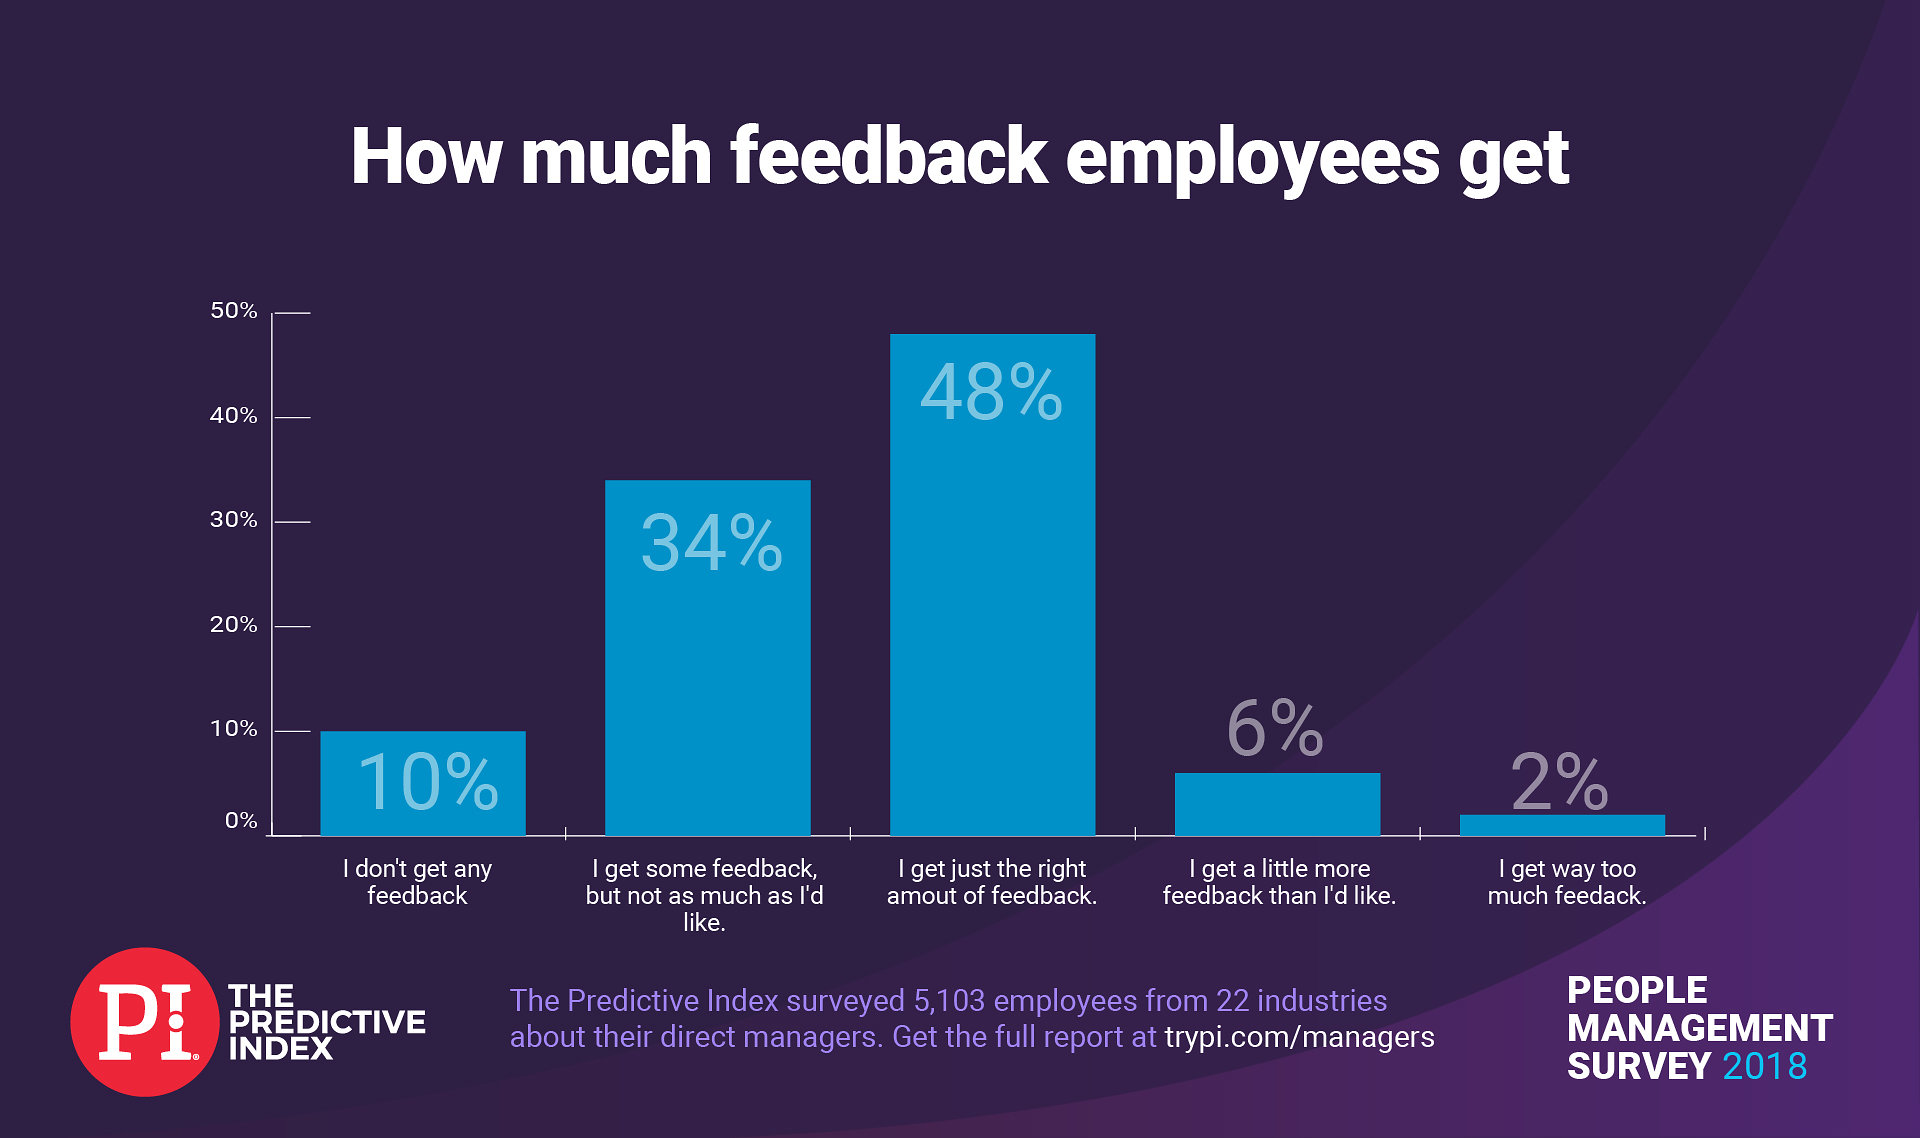 Only 48 percent of employees get the right amount of feedback from their managers.